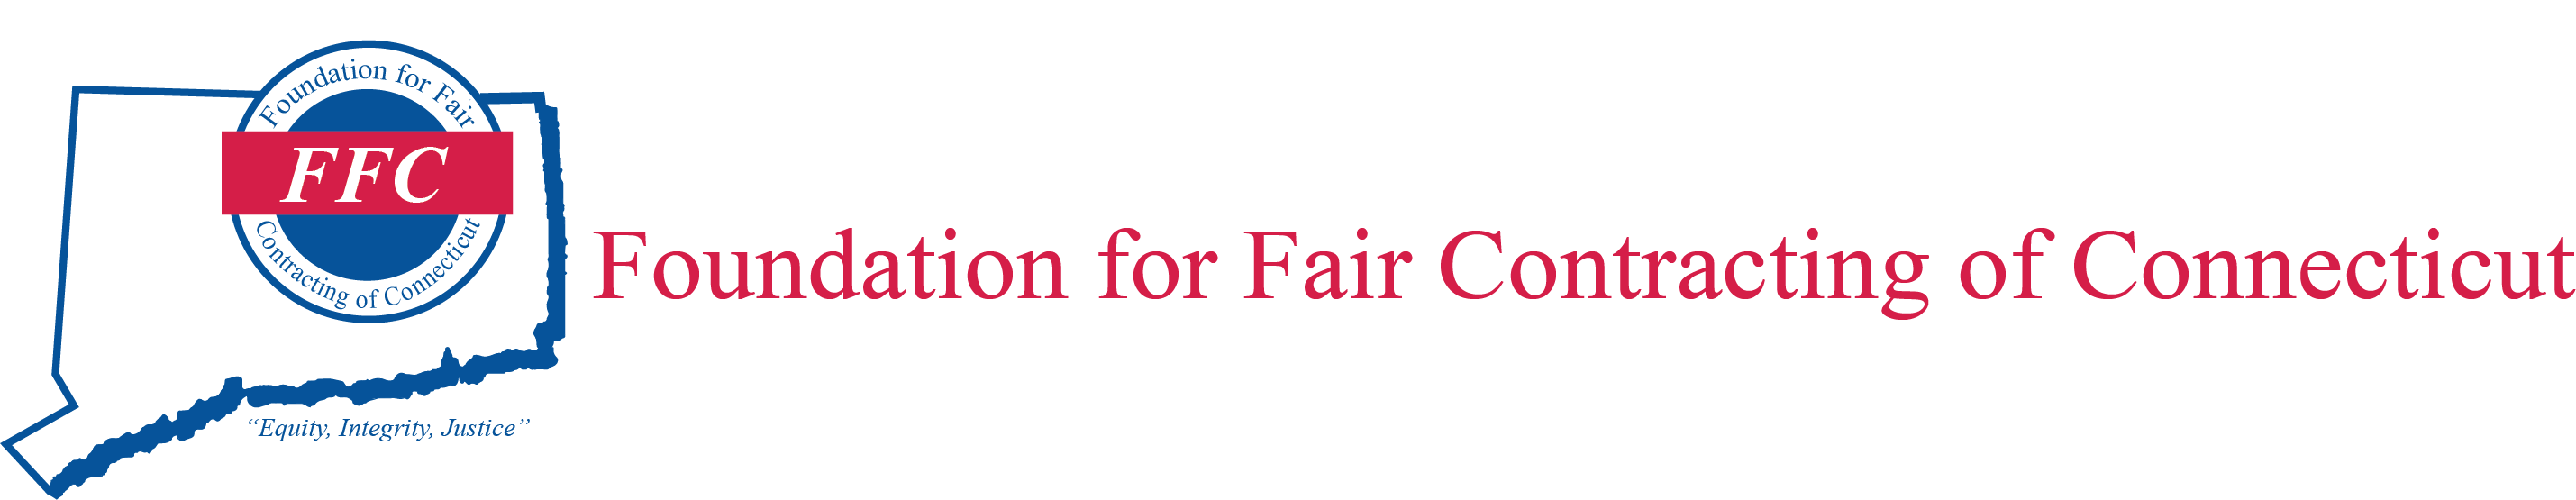 Foundation for Fair Contracting of Connecticut, Inc.